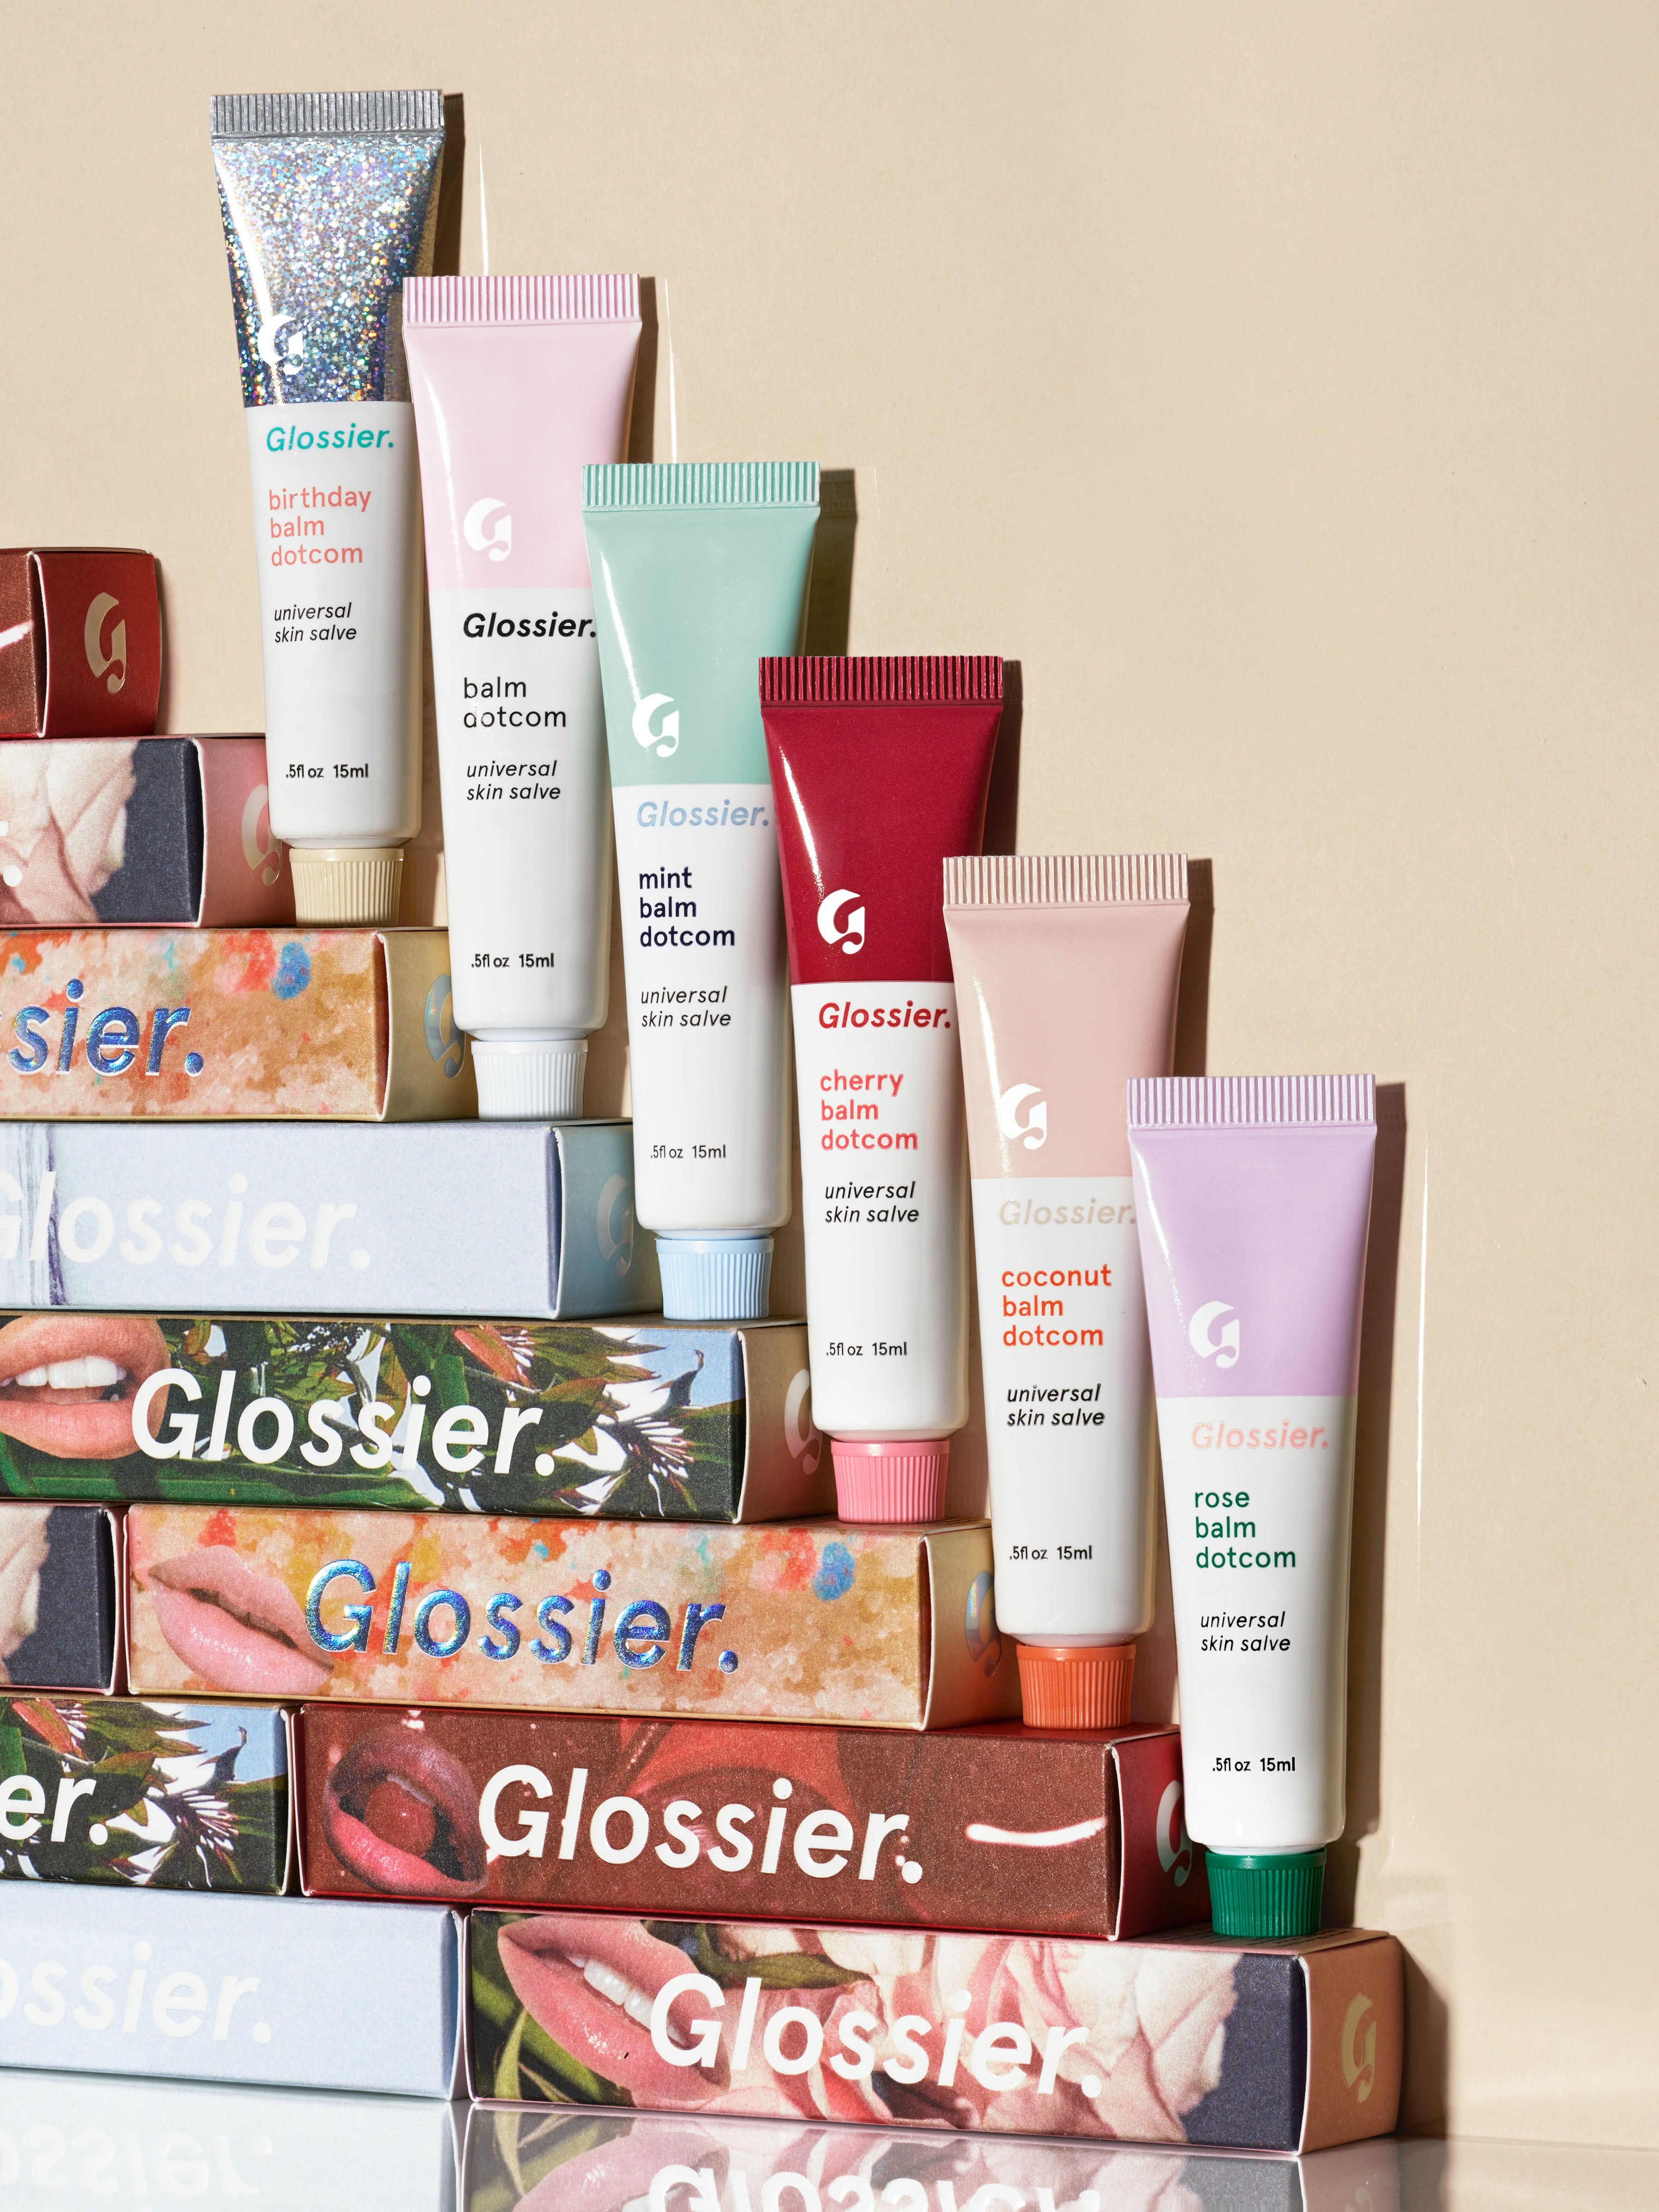 Glossier's Dotcom Balm | Source: Courtesy